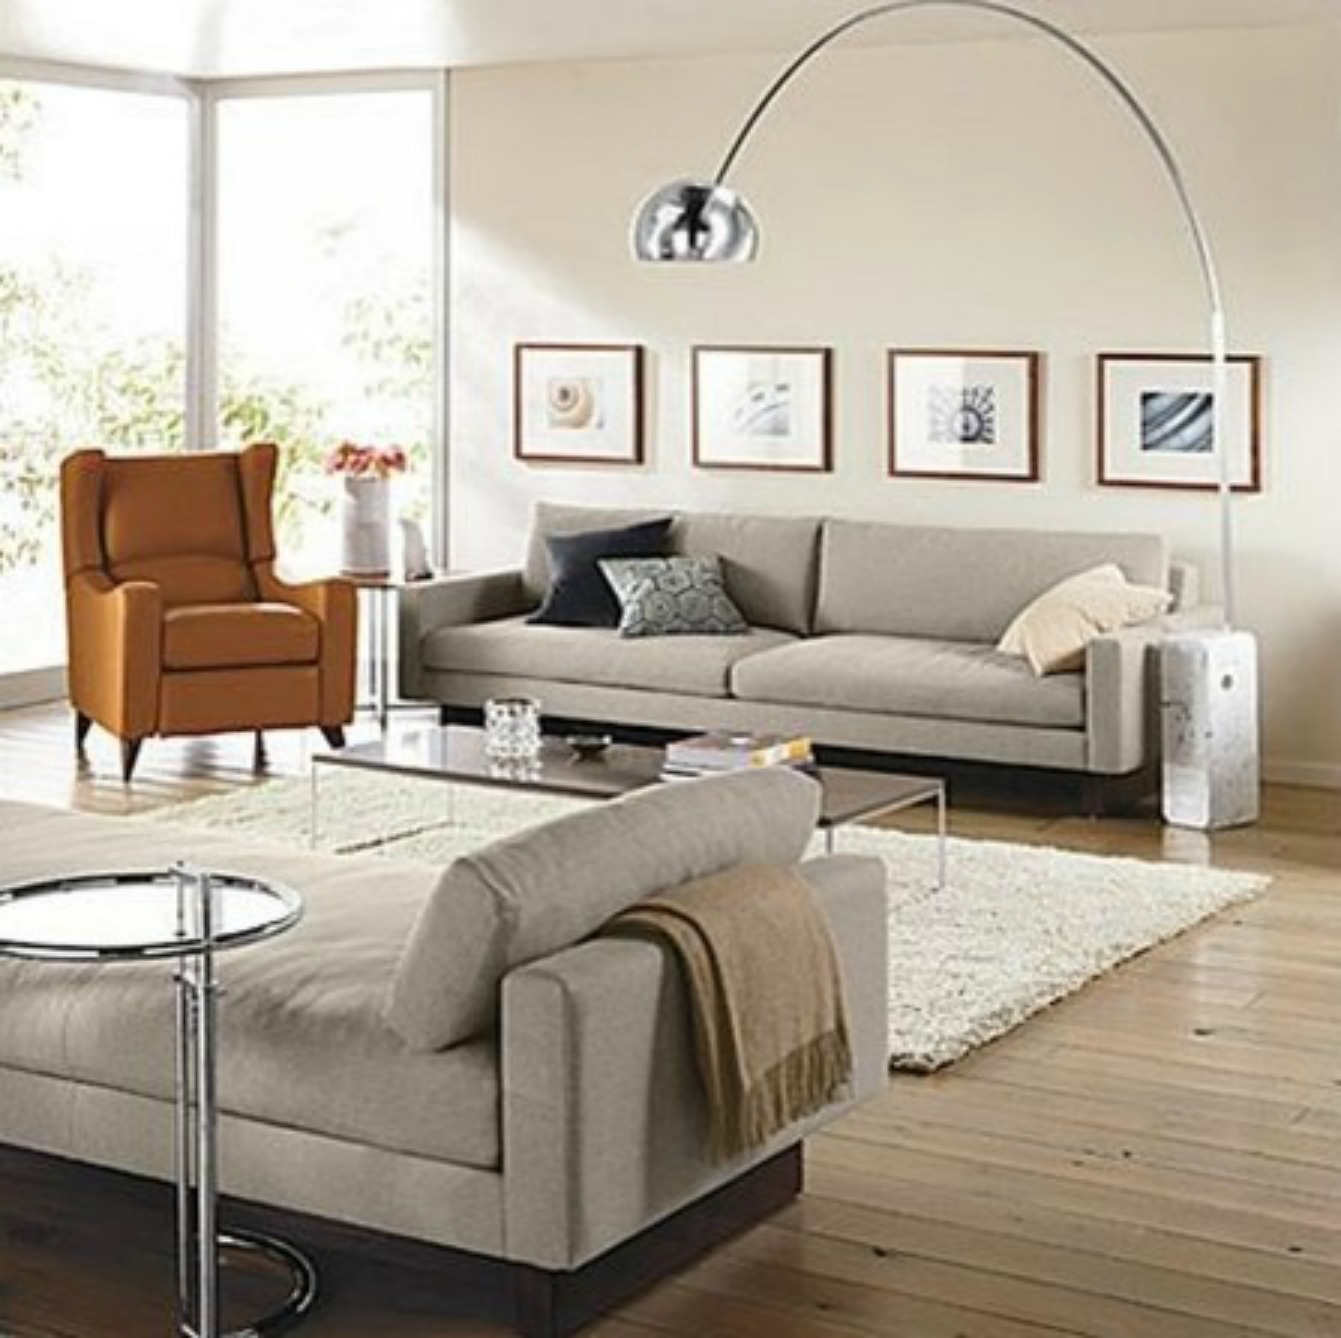 Recliners In Design Yay Or Nay?  Centsational Girl